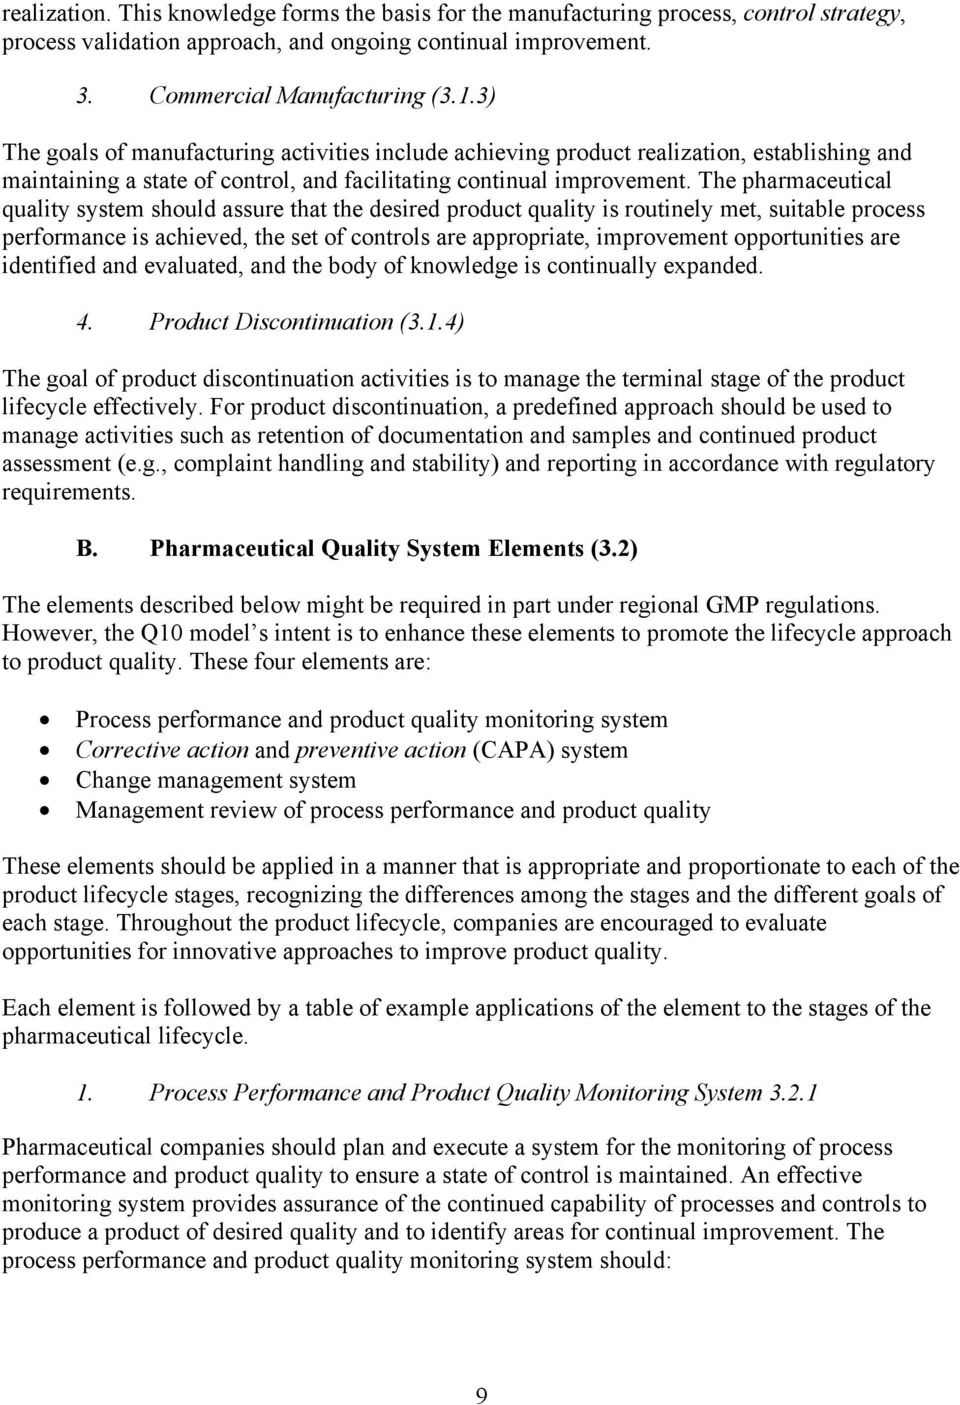 The pharmaceutical quality system should assure that the desired product quality is routinely met, suitable process performance is achieved, the set of controls are appropriate, improvement